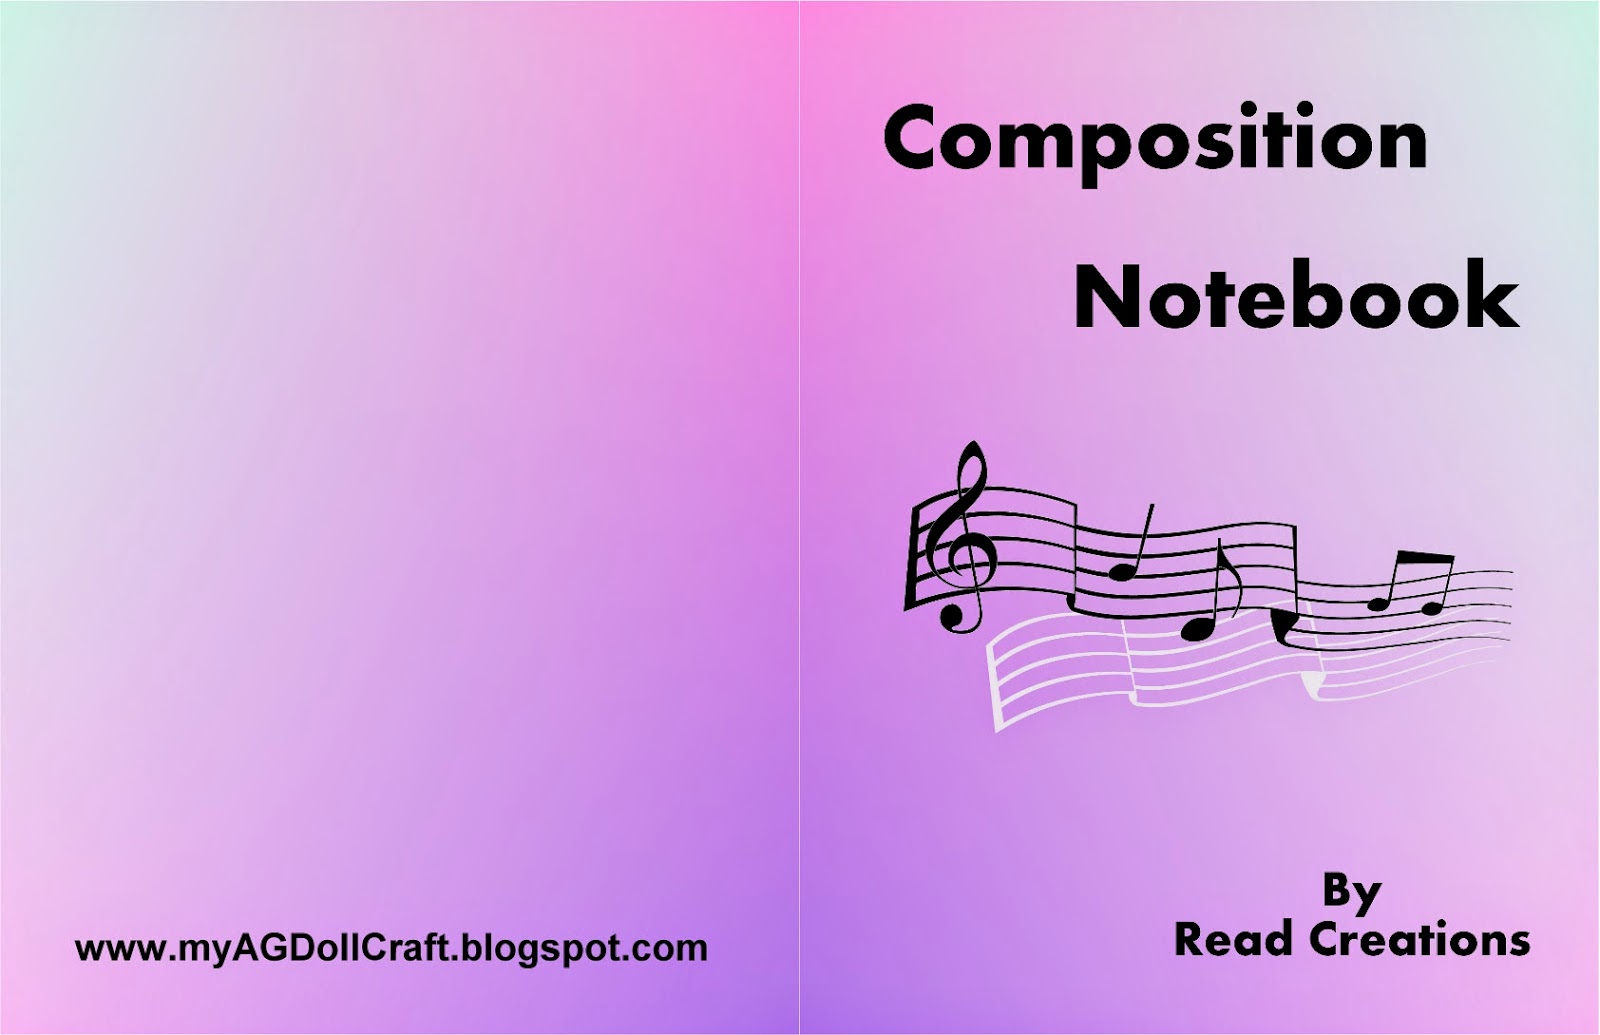 Composition Notebook book Cover